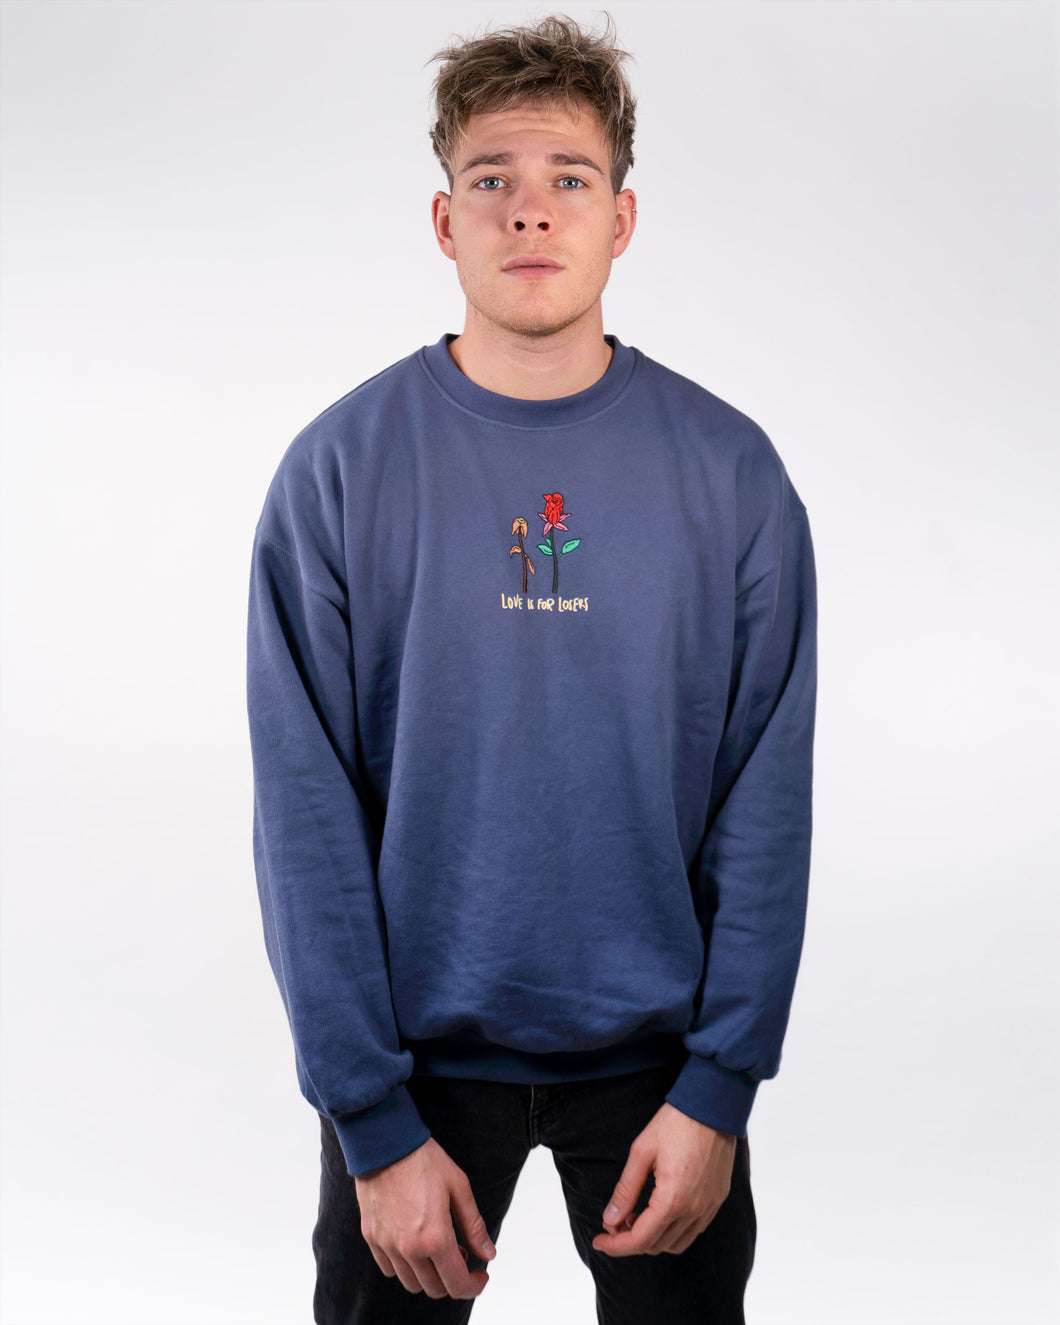 Love Is For Losers Crewneck